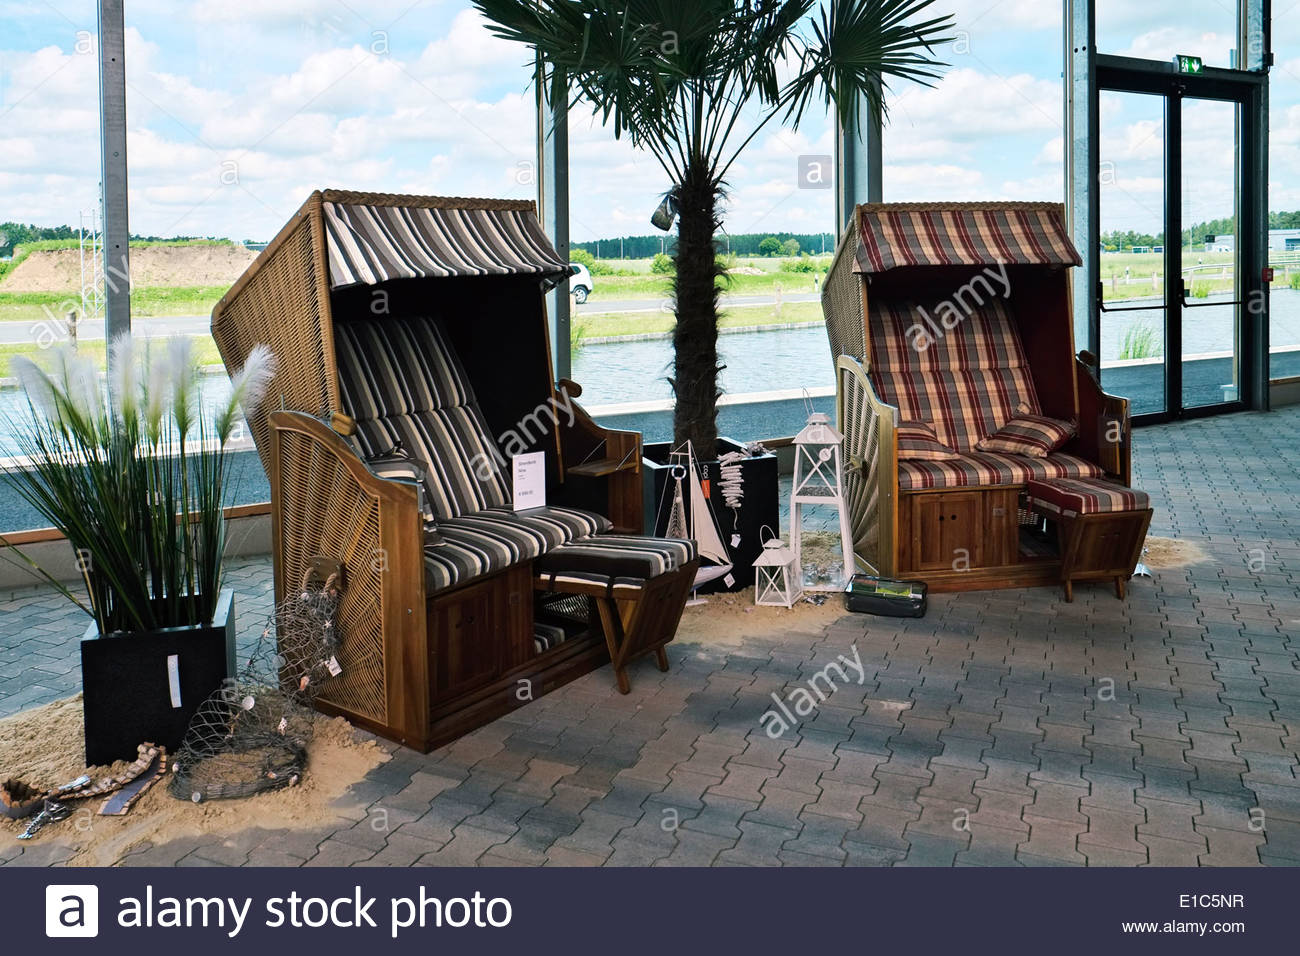 Strandkörbe — beach chairs — are displayed for sale at a garden store showroom in Germany. - Stock Image